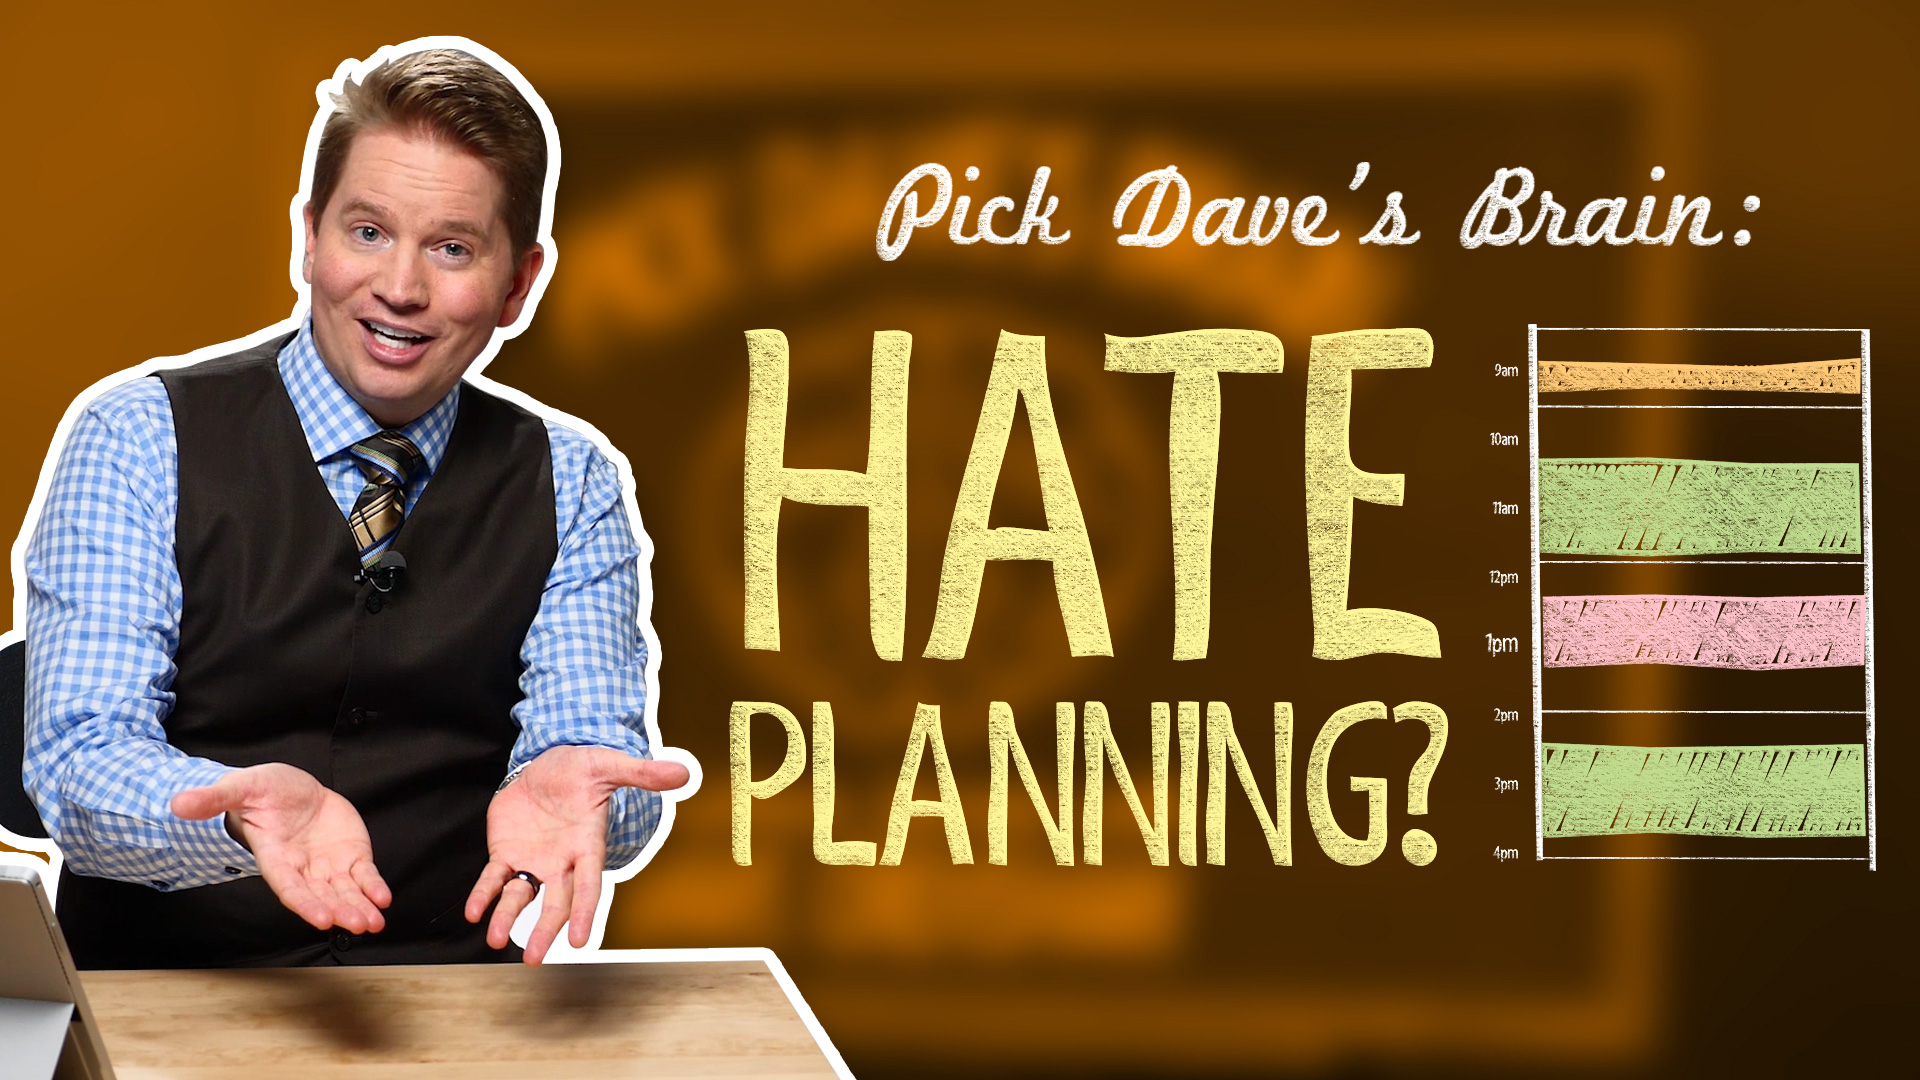 Hate planning? Try these tips. – Pick Dave's Brain